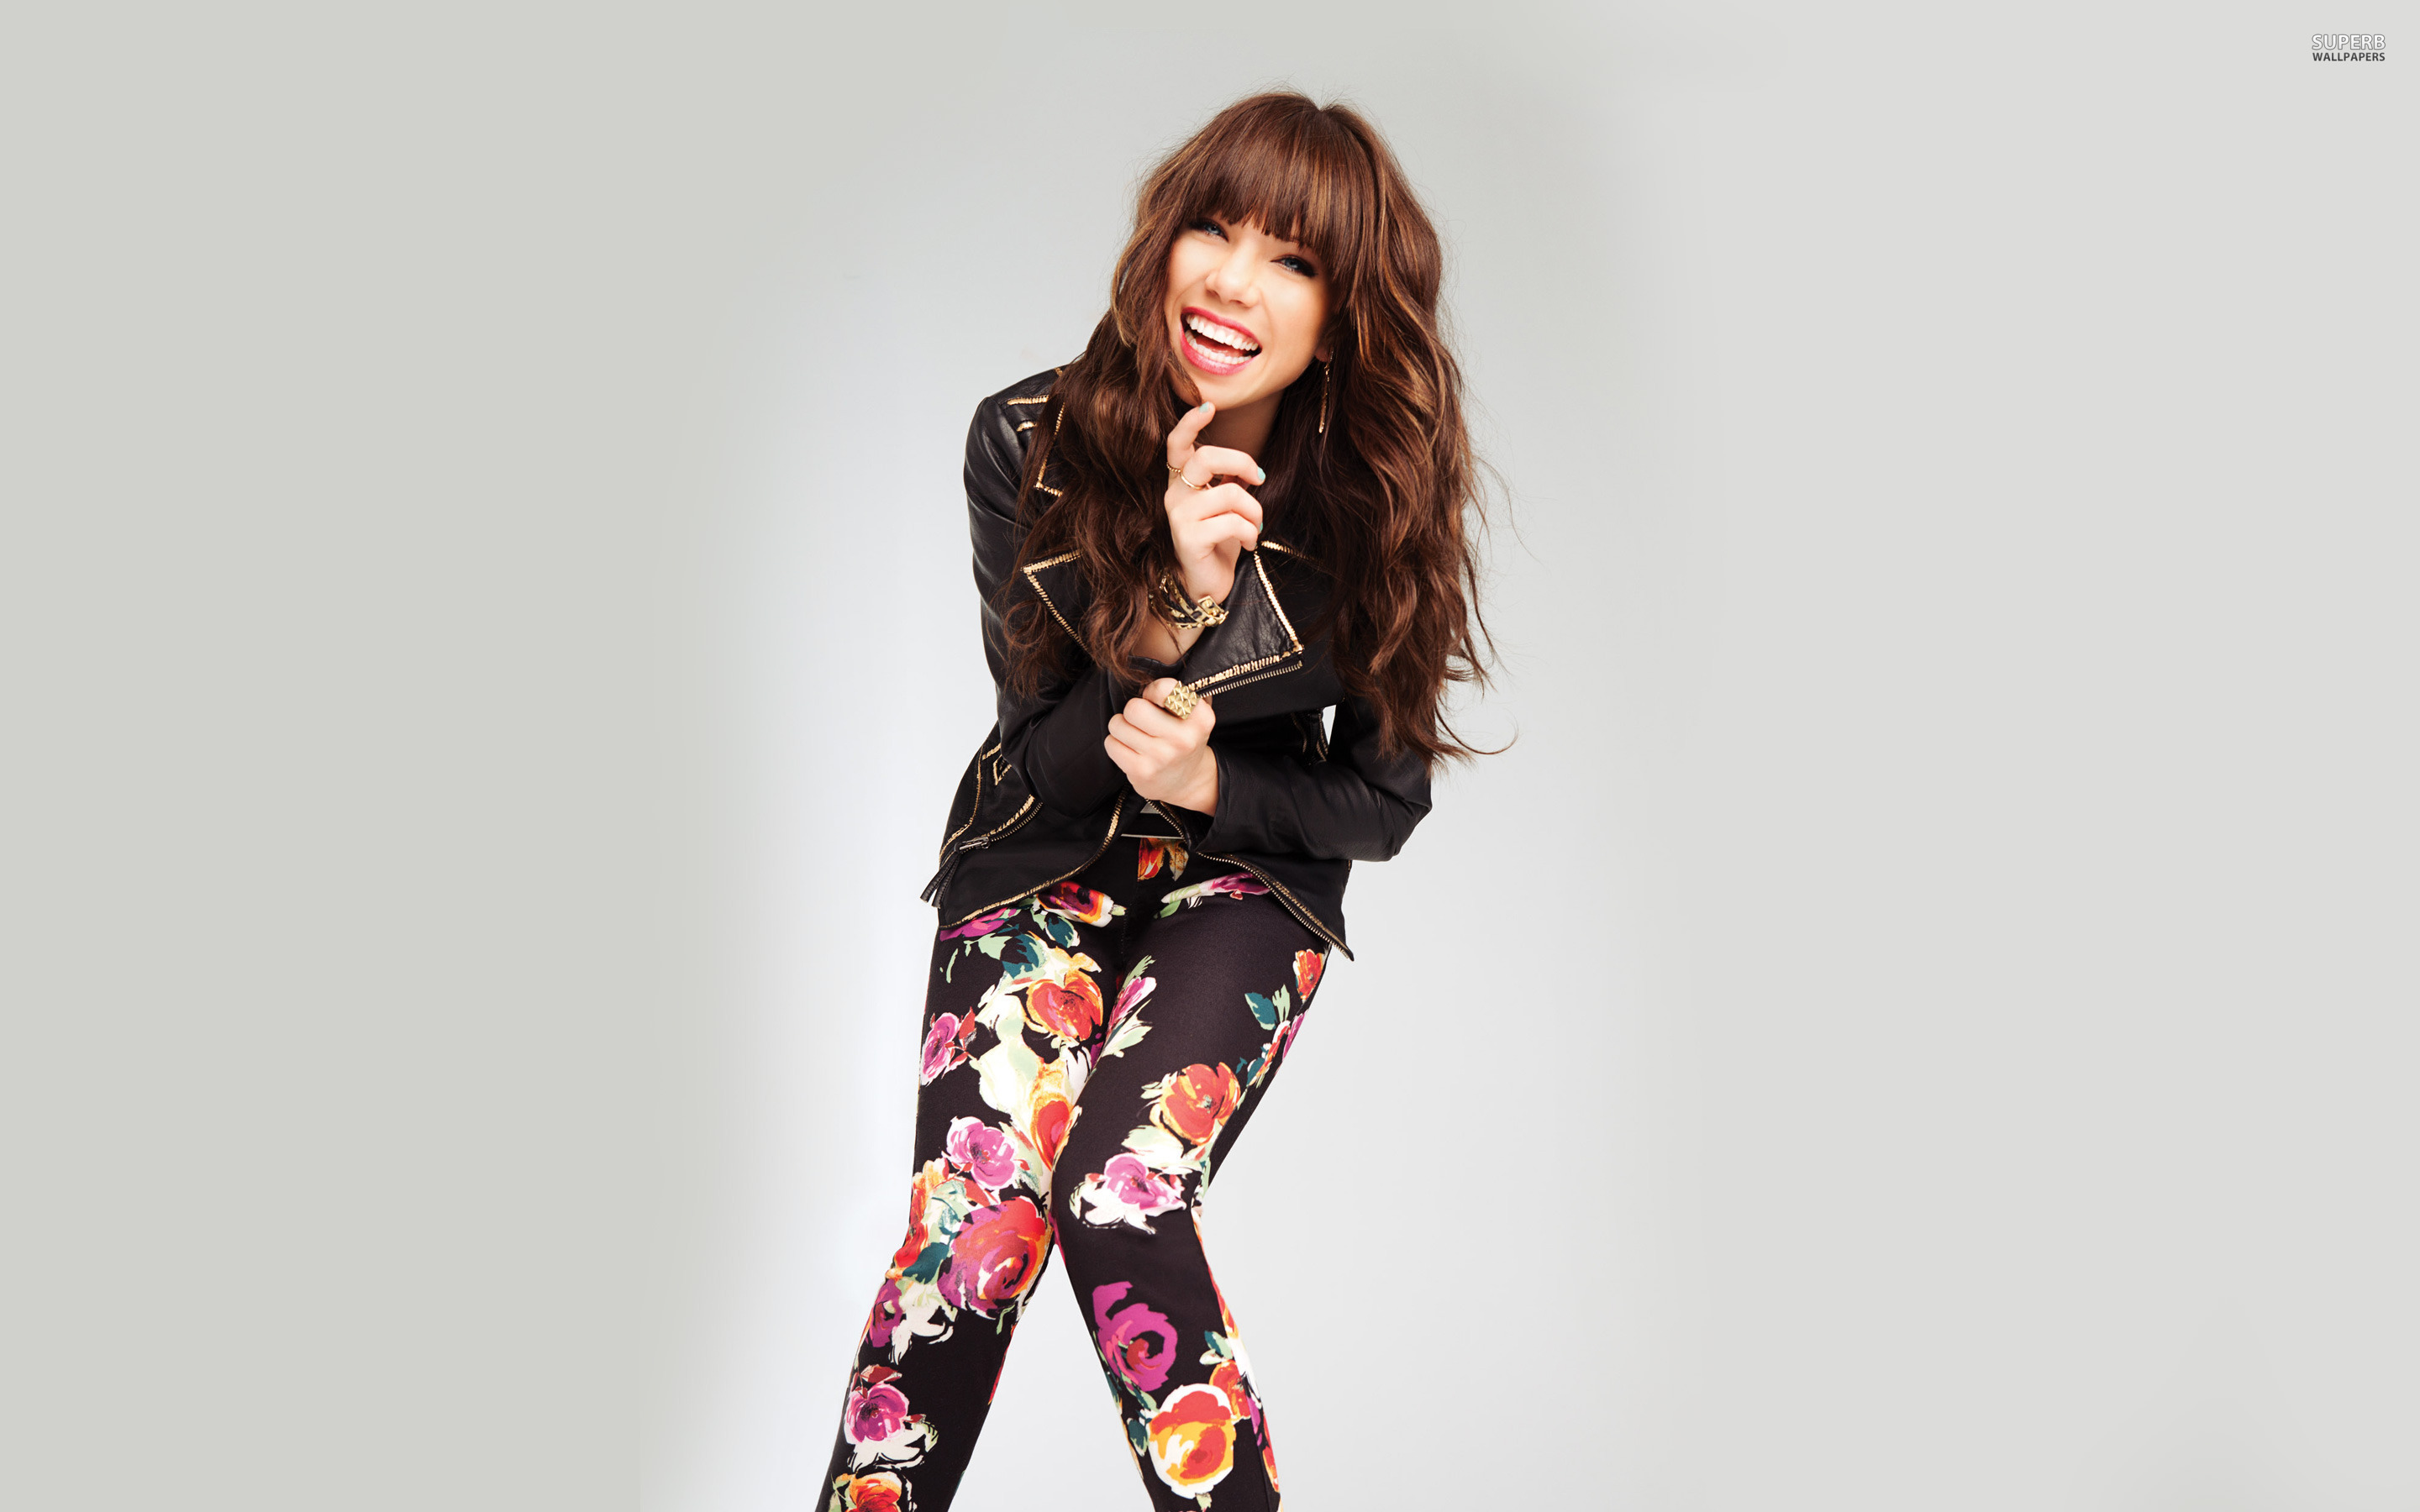 carly-rae-jepsen-s-body-measurements-3